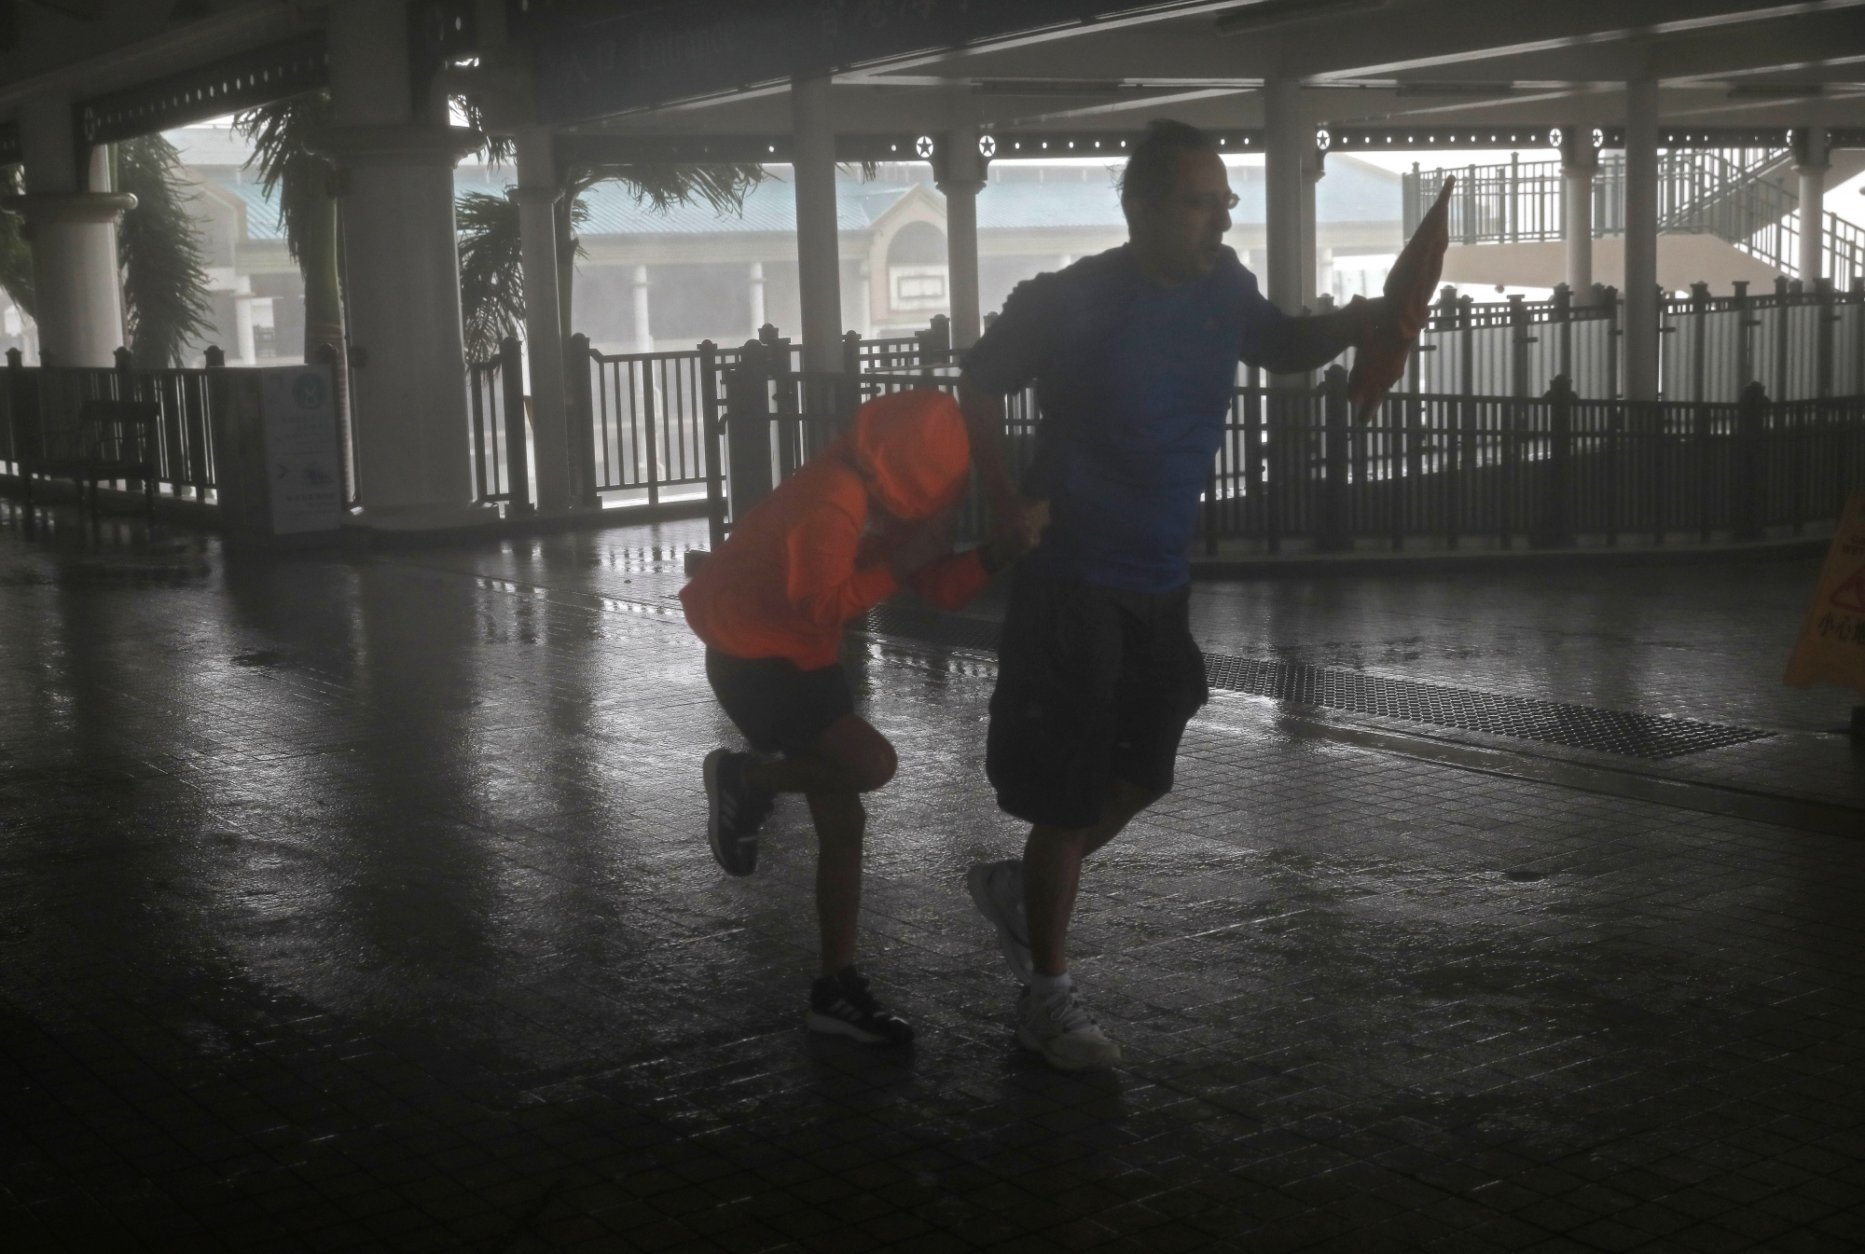 A man and a girl walk against strong winds from Typhoon Mangkhut on a pier on Victoria Habour Hong Kong, Sunday, Sept. 16, 2018. Hong Kong and southern China hunkered down as strong winds and heavy rain from Typhoon Mangkhut lash the densely populated coast. The biggest storm of the year left at least 28 dead from landslides and drownings as it sliced through the northern Philippines. (AP Photo/Vincent Yu)